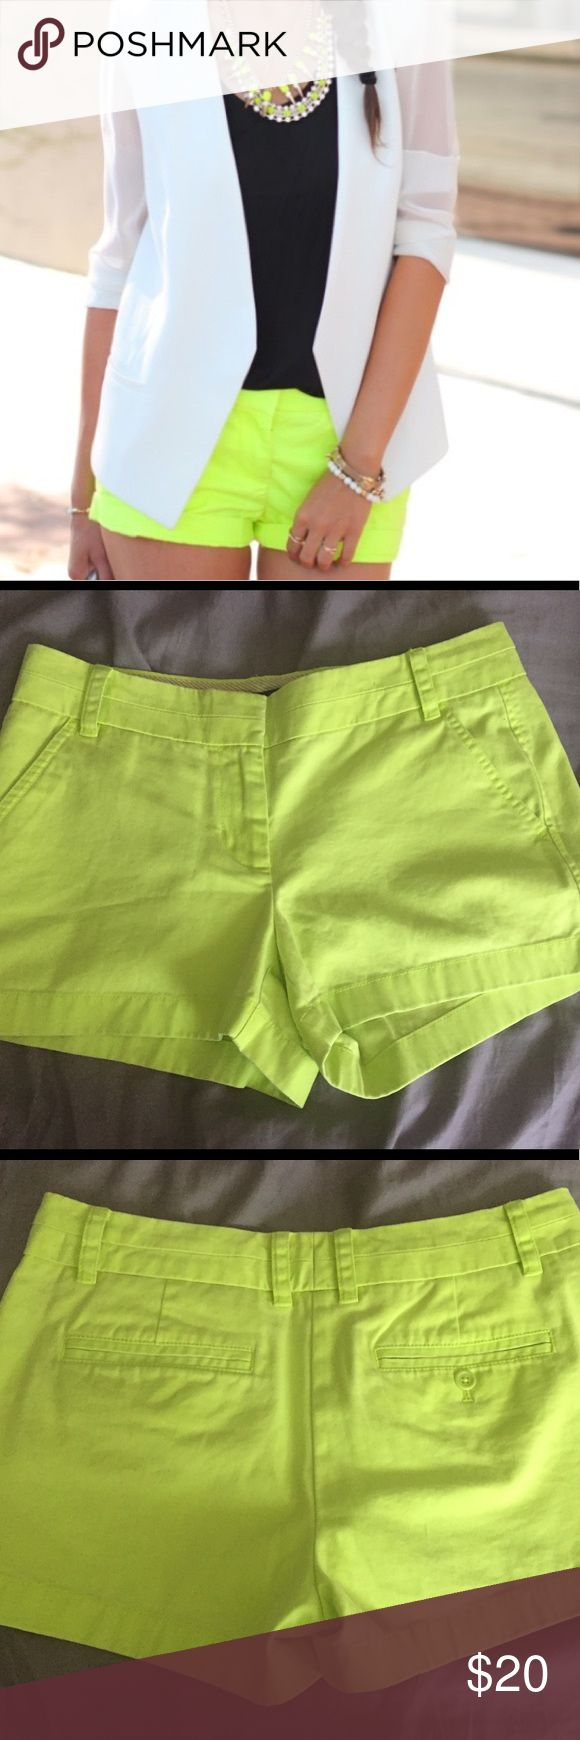 J Crew neon green chino shorts 4 Preppy outfit Excellent used condition. No flaws only a pinhole from where the tag was removed. Size: 4 color: neon green. No stains or rips. Smoke free home. J. Crew Shorts